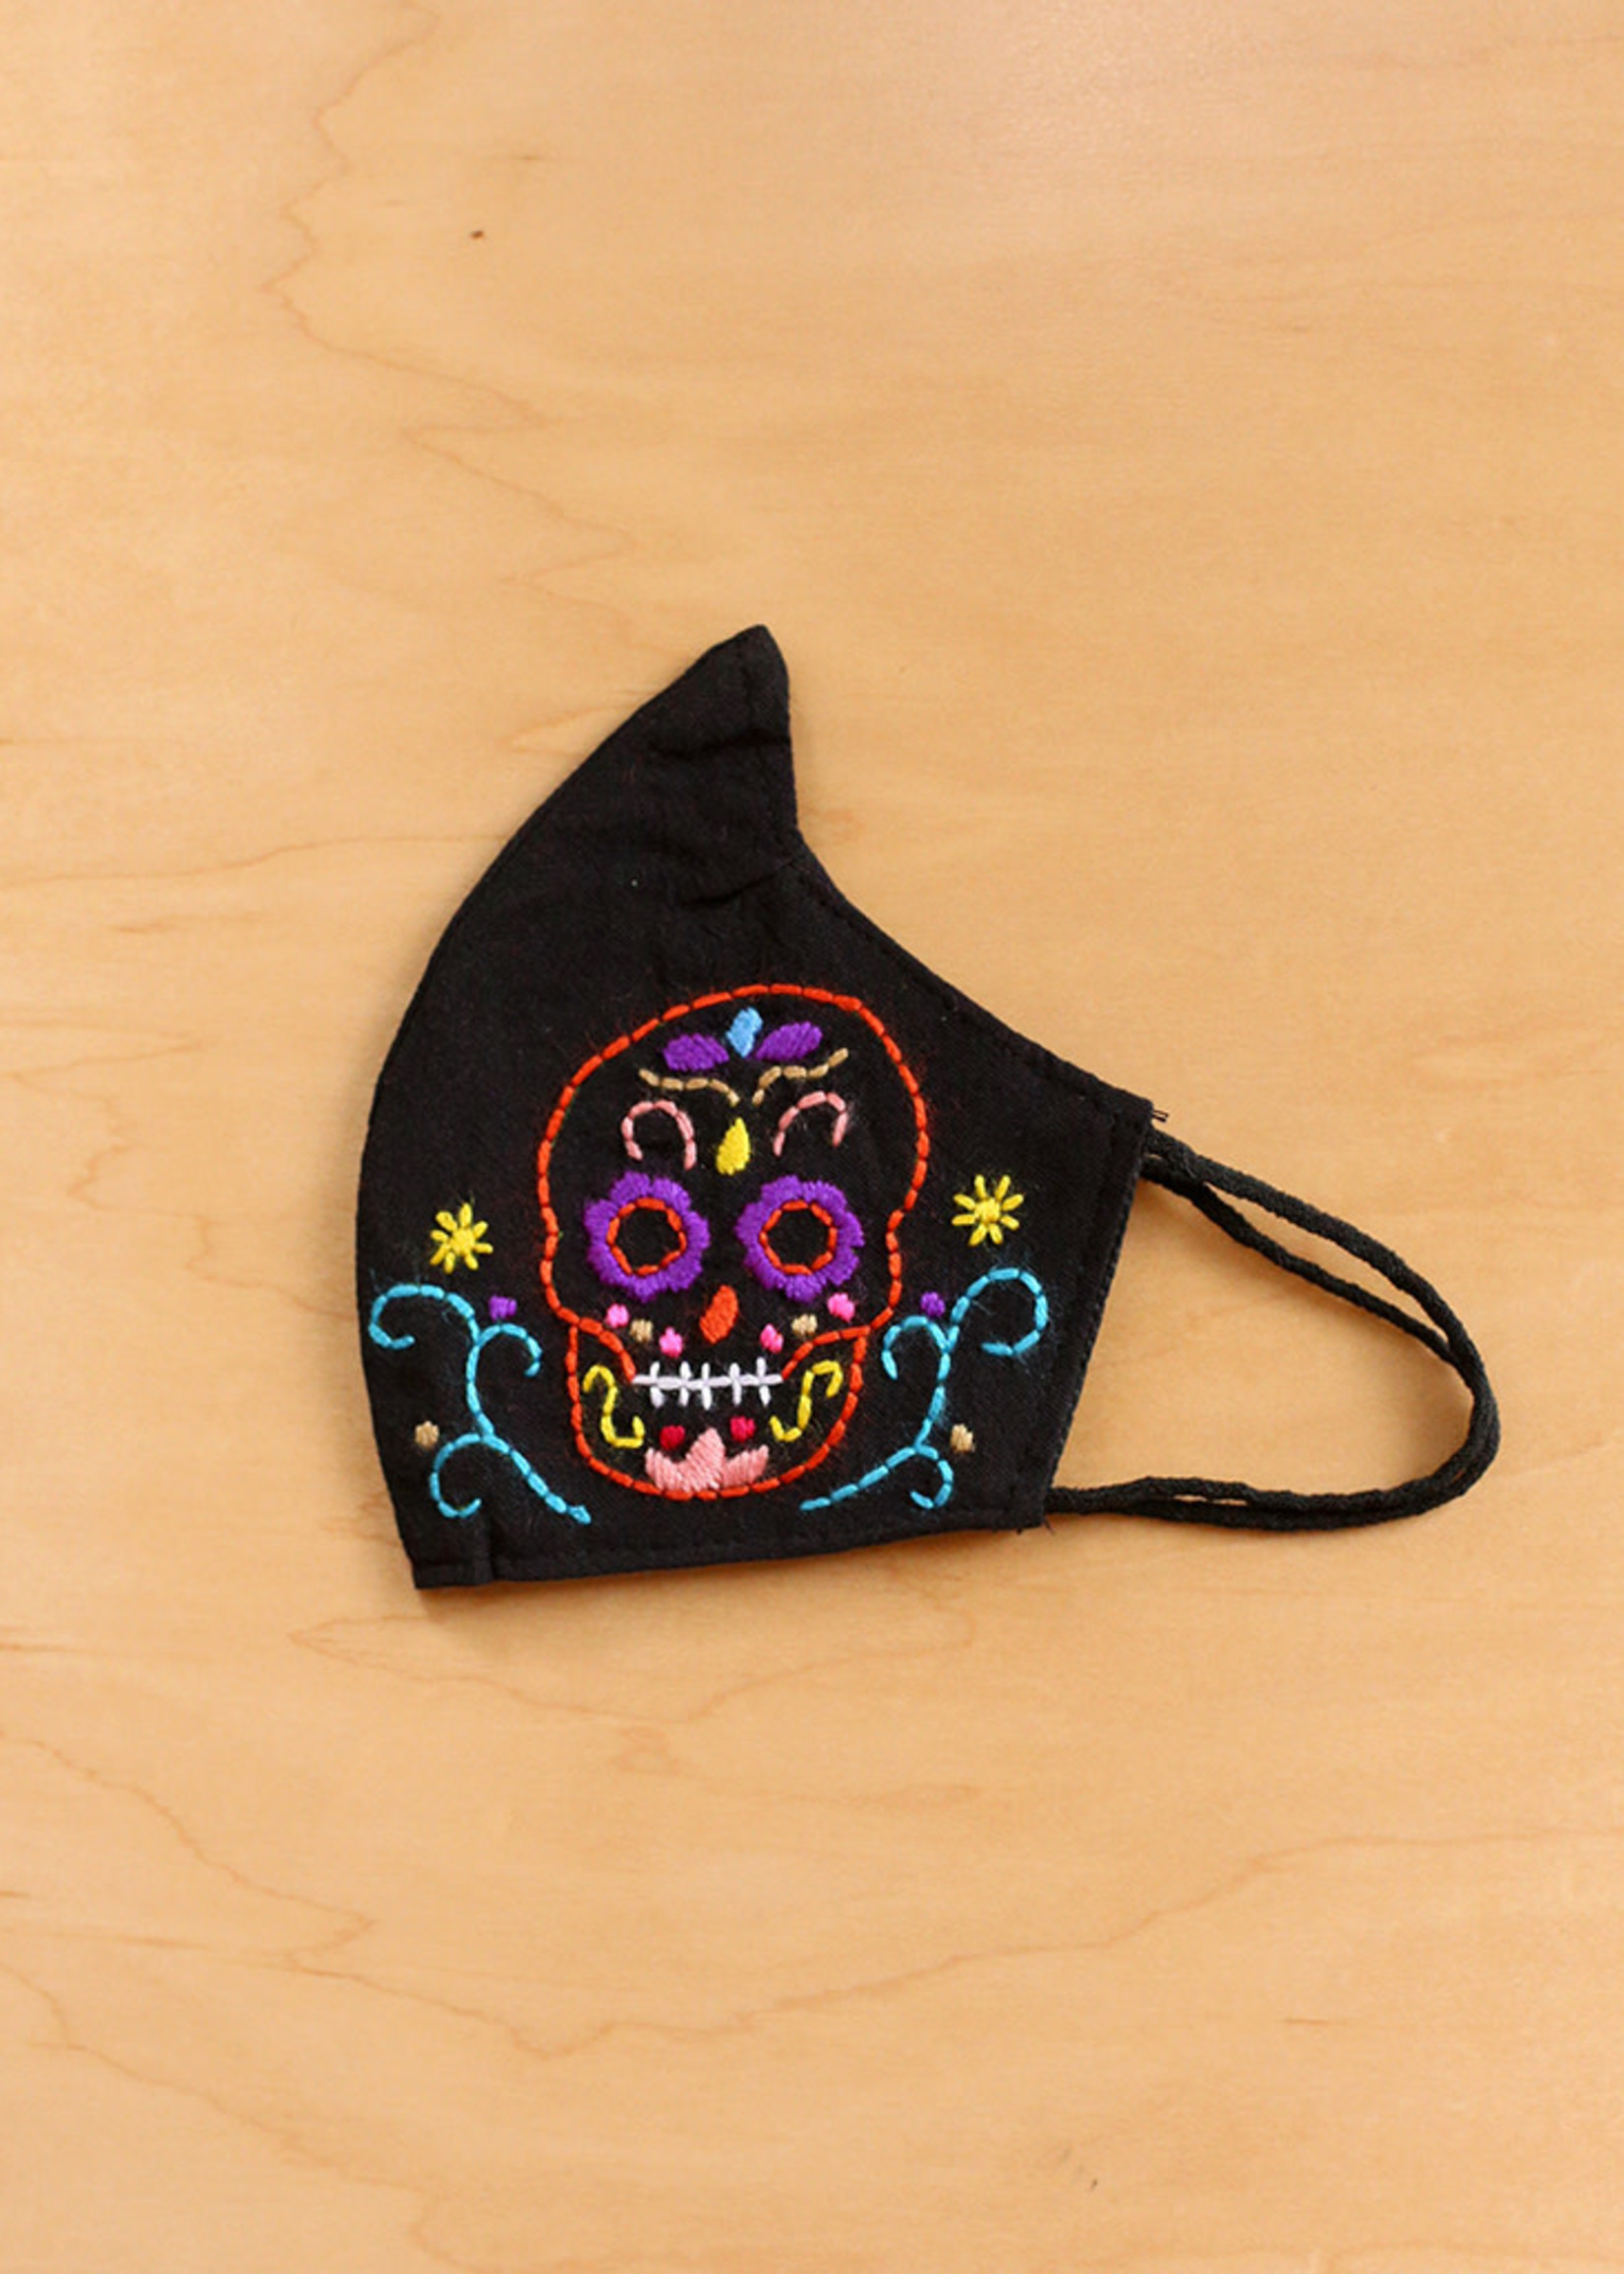 Embroidered Sugar Skull Face Mask